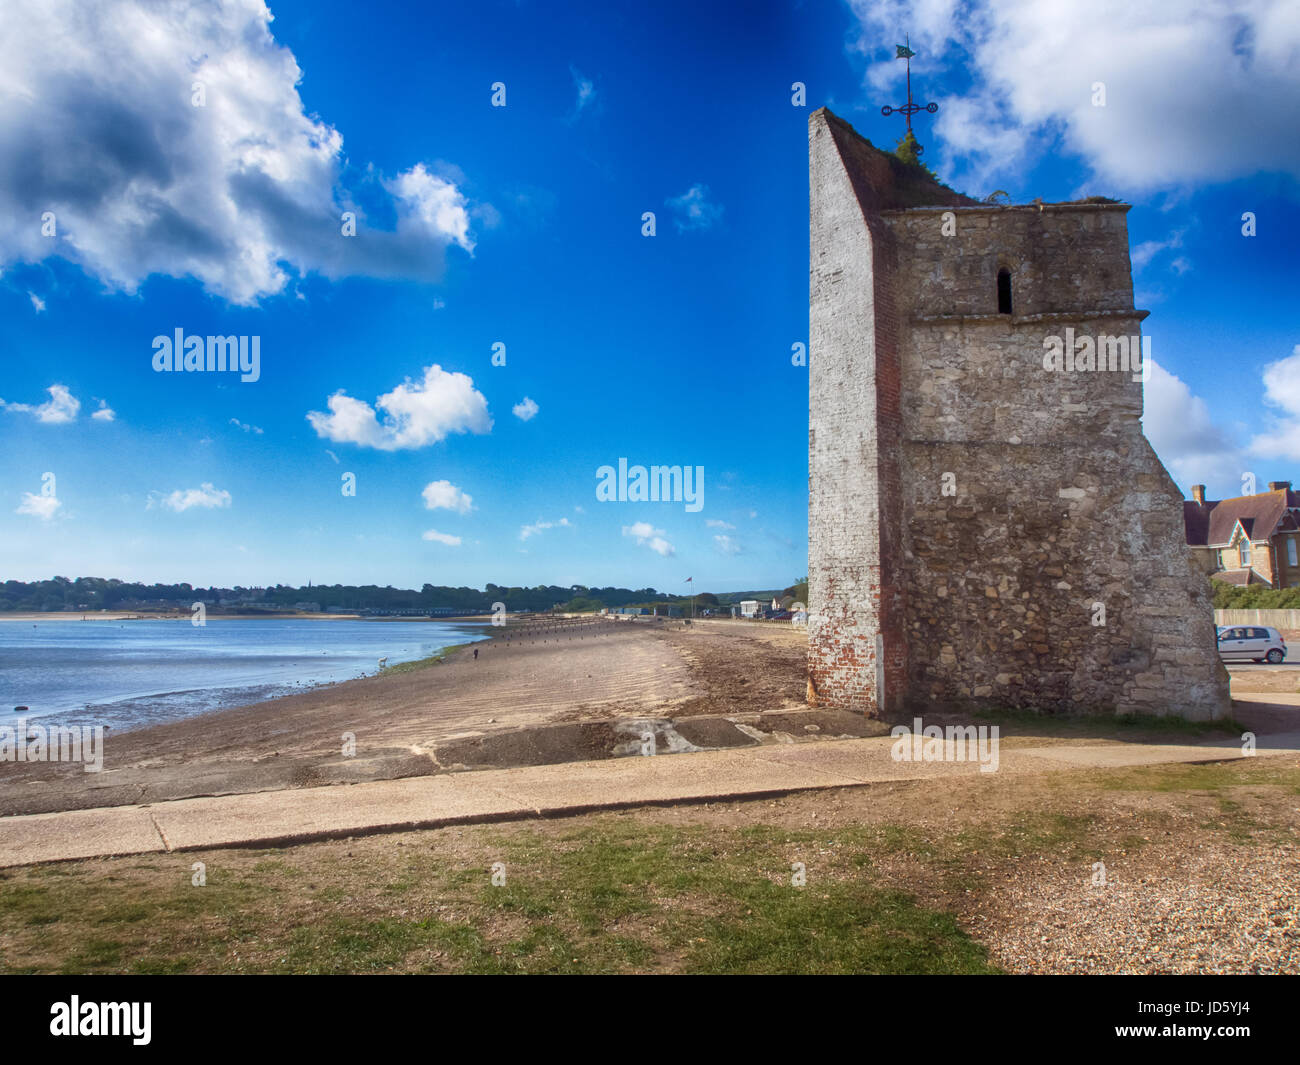 The remains of St Helen's church at St Helen's Duver, Nodes point, Isle of Wight Stock Photo